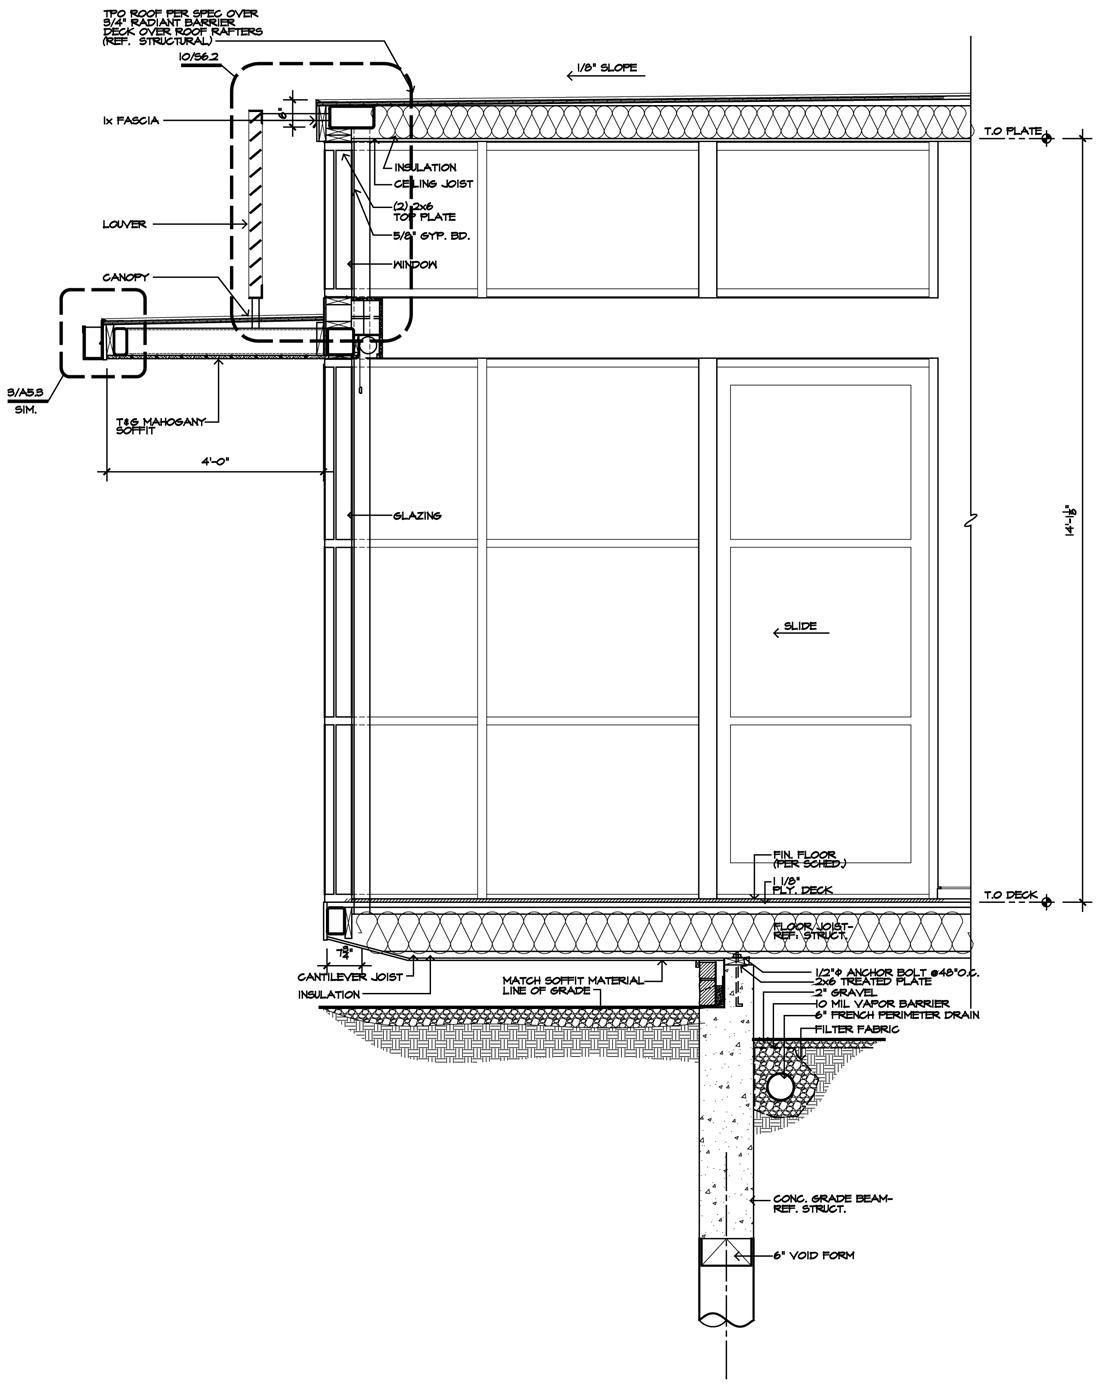 Modern house project for 2012 life of an architect for Section window design